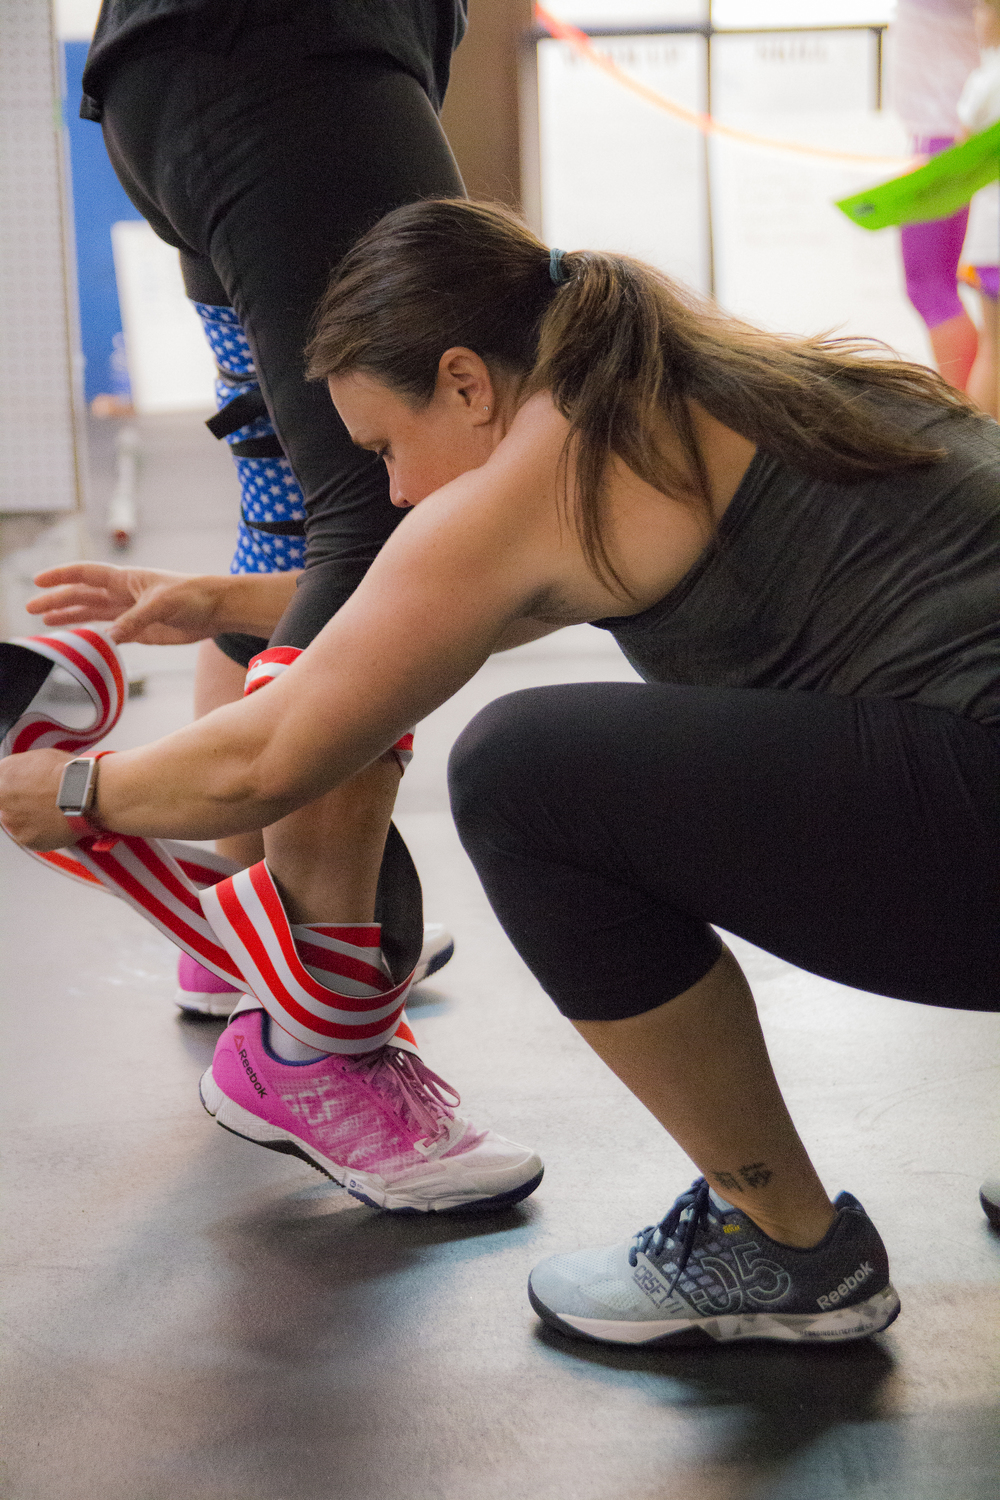 The woman's knee wrap came undone while she was squatting. A fellow competitor quickly unraveled it so she could continue with the WOD.      ~~~~LOVED this moment here~~~~  Athletes from    Elite Progression    in Mahopac, New York.